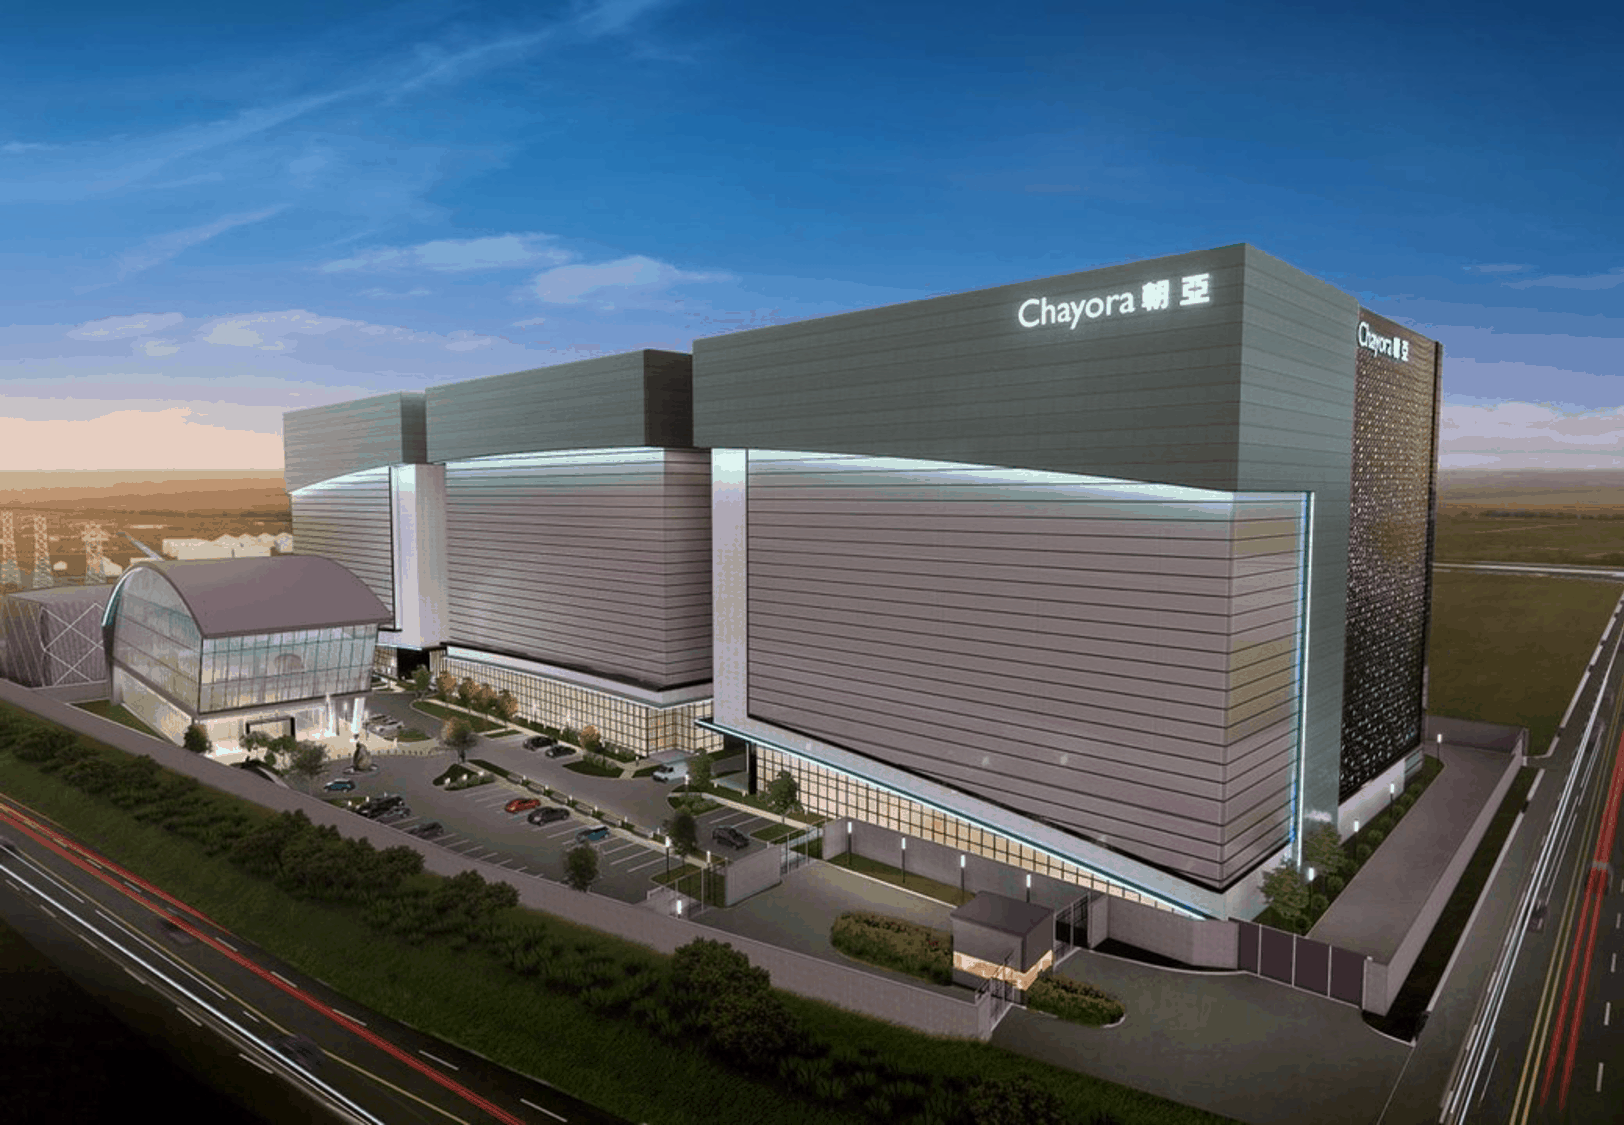 Shanghai Data Centre Campus - Photo of the building complex of chayora's china data center in Shanghai